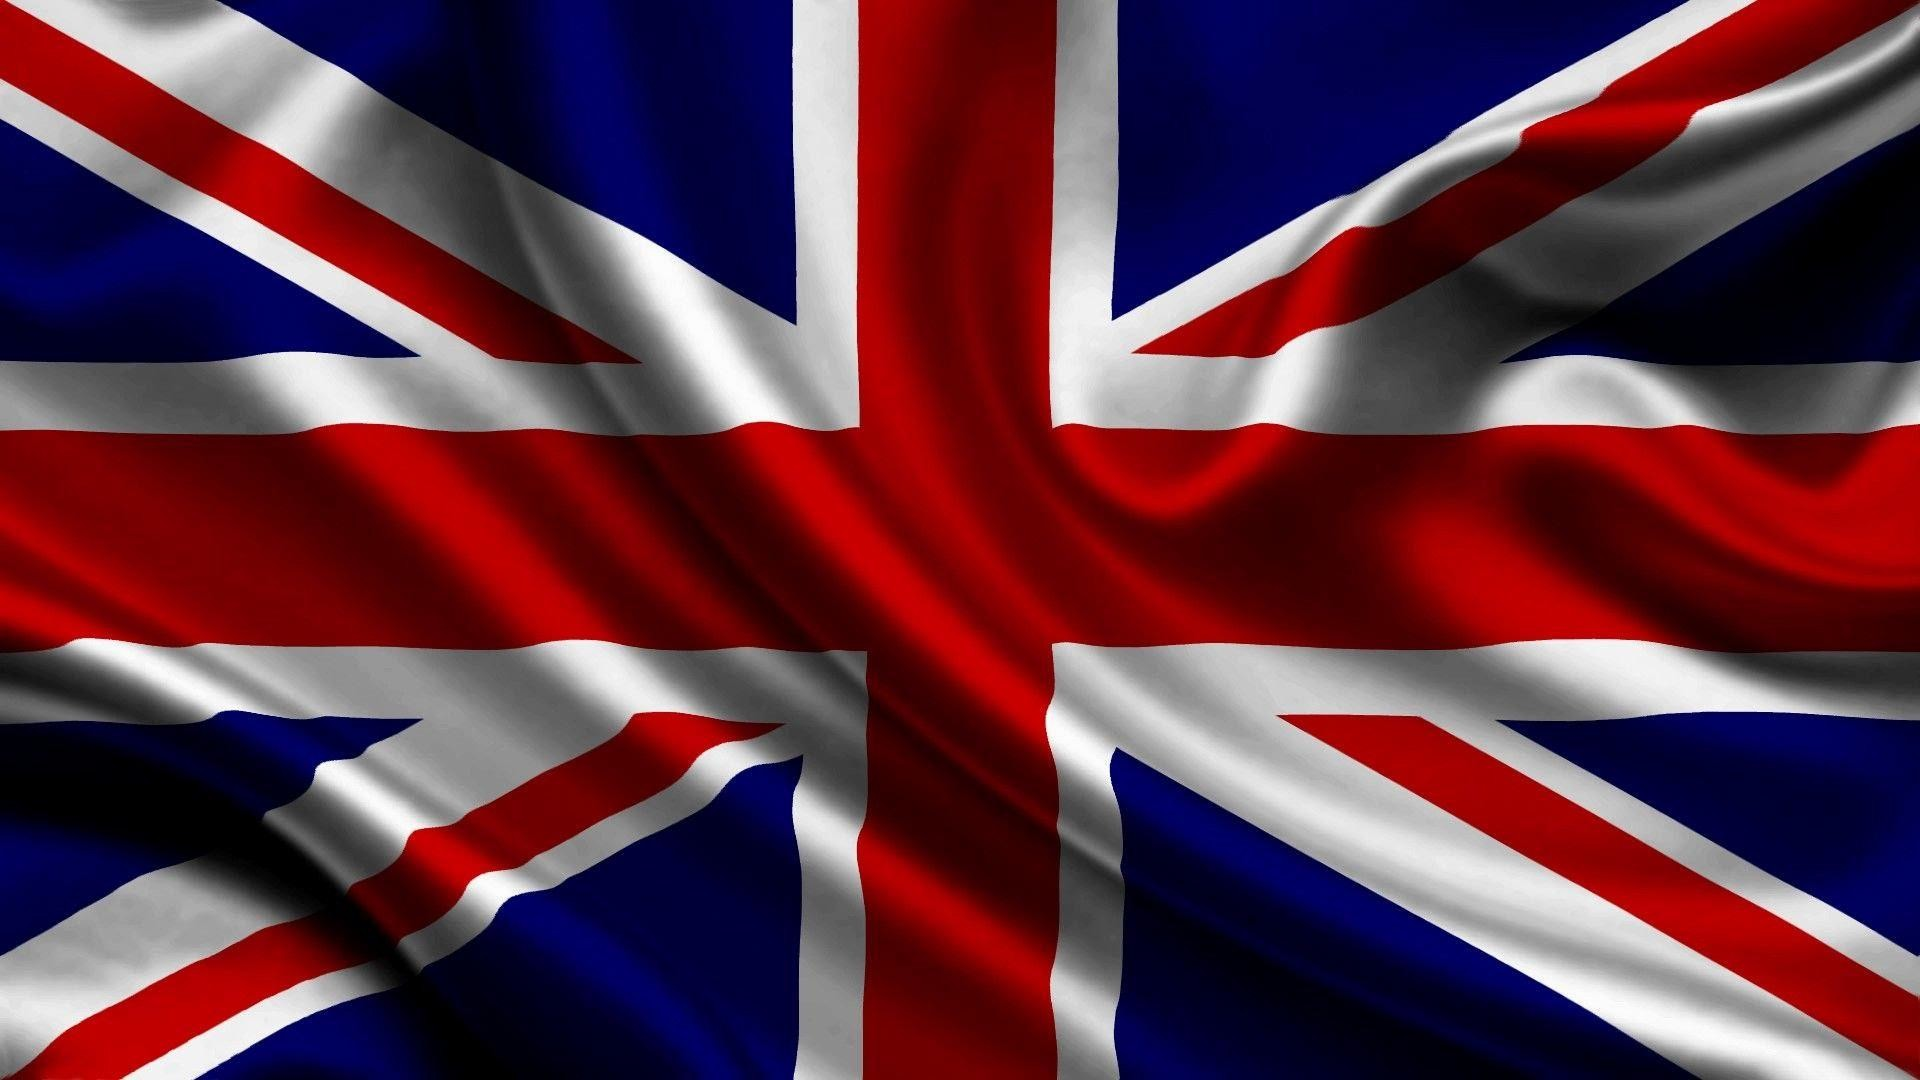 England-Bans-Its-Own-Flag-to-Avoid-Offending-